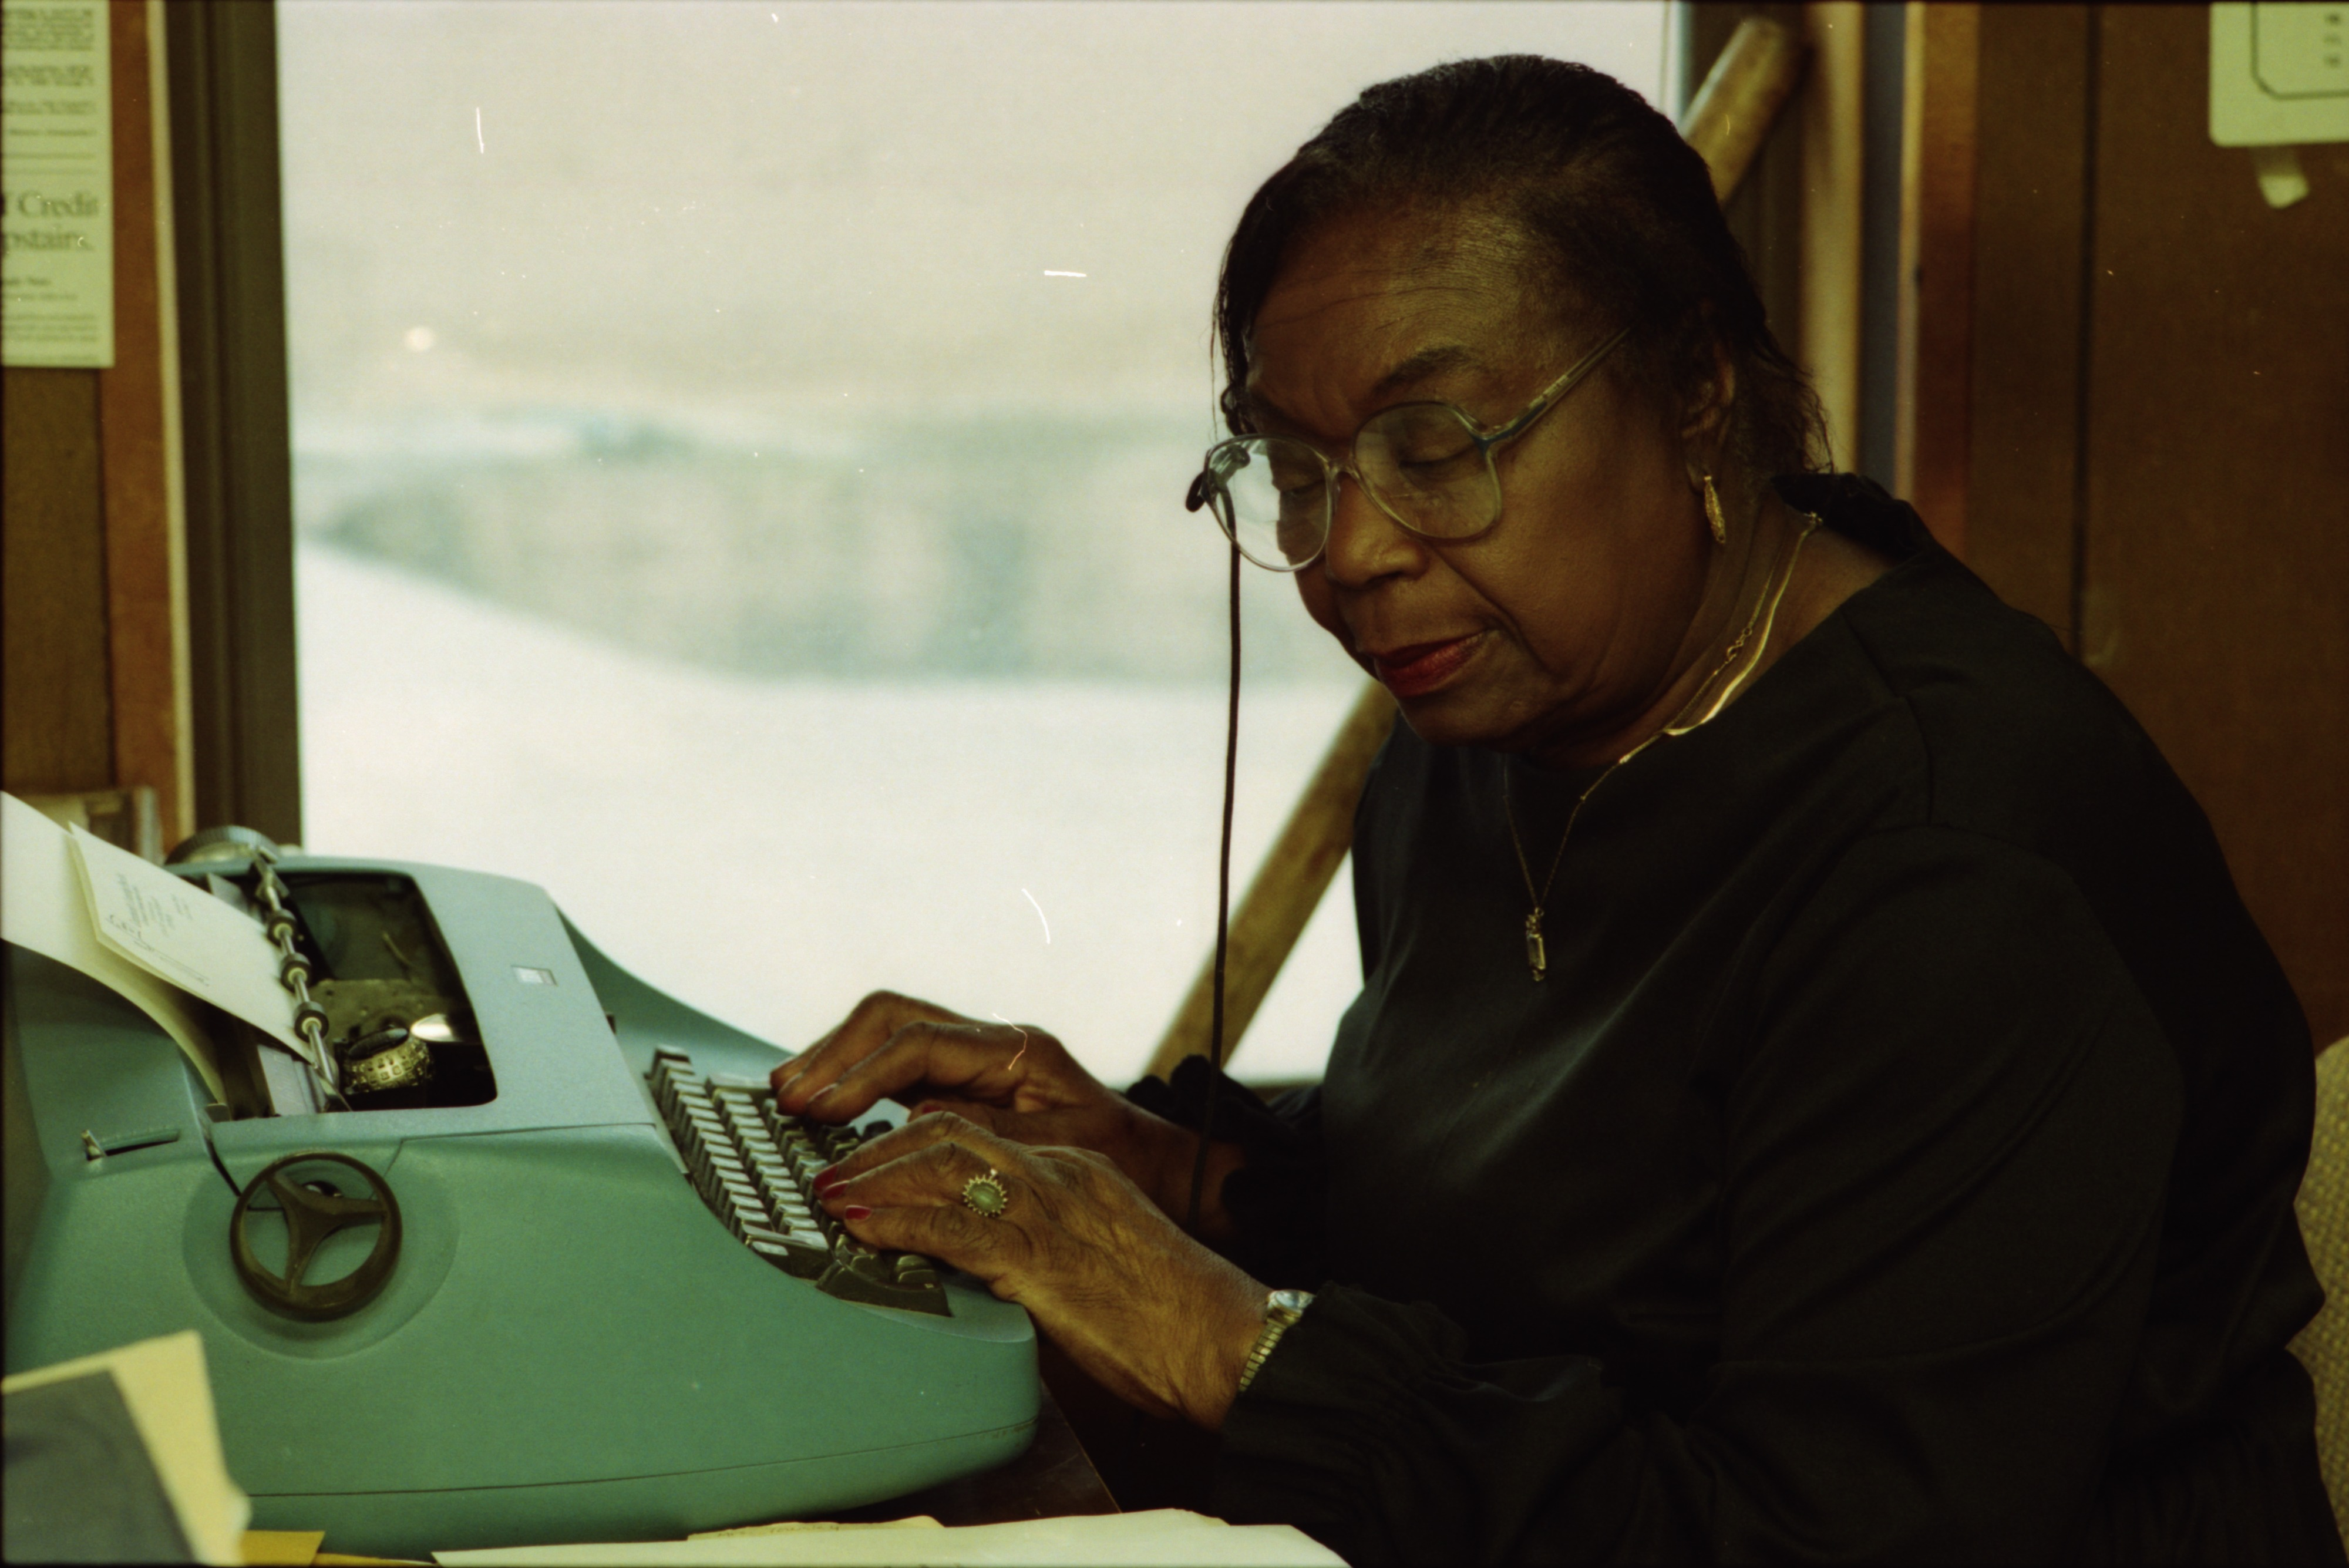 Lucille Hall Porter at the Community Leaning Post, March 1, 1993 image